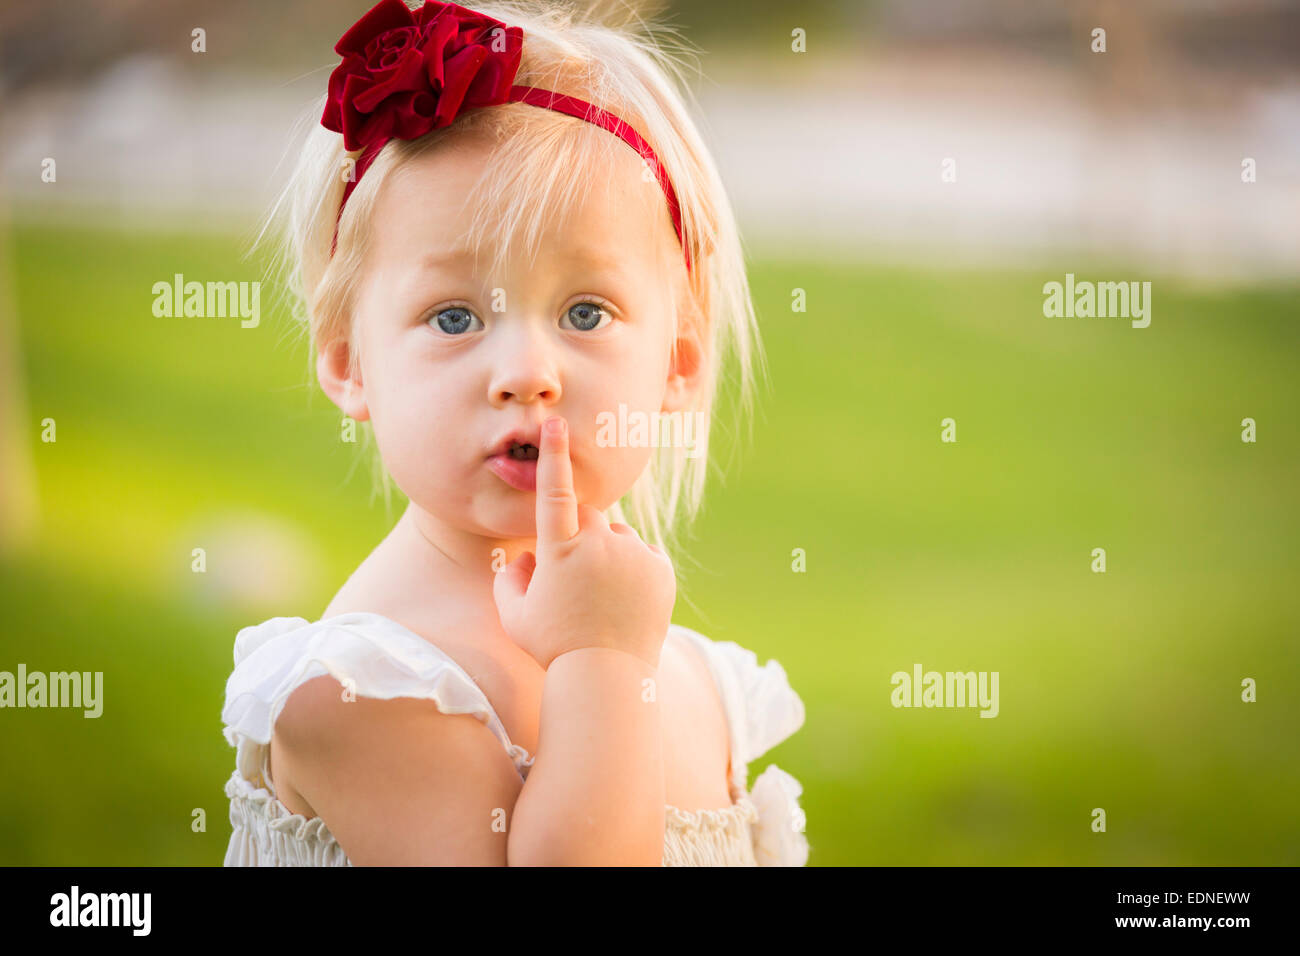 Beautiful Adorable Little Girl With Her Finger on Her Mouth Wearing White Dress In A Grass Field. Stock Photo